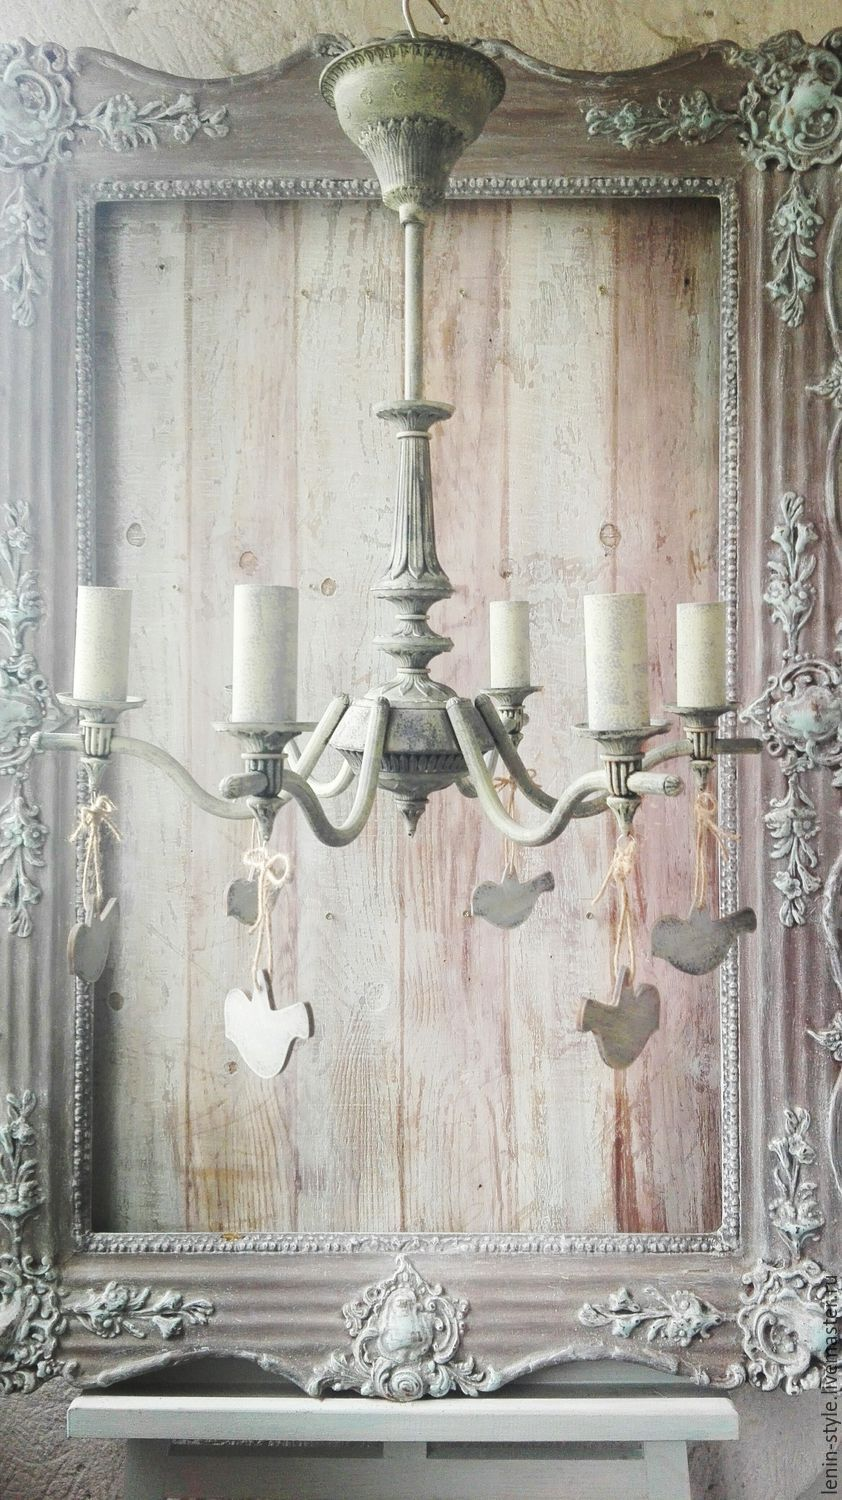 Chandelier provence birds shop online on livemaster with lamps handmade chandelier provence birds leninstyle lenin style mozeypictures Images